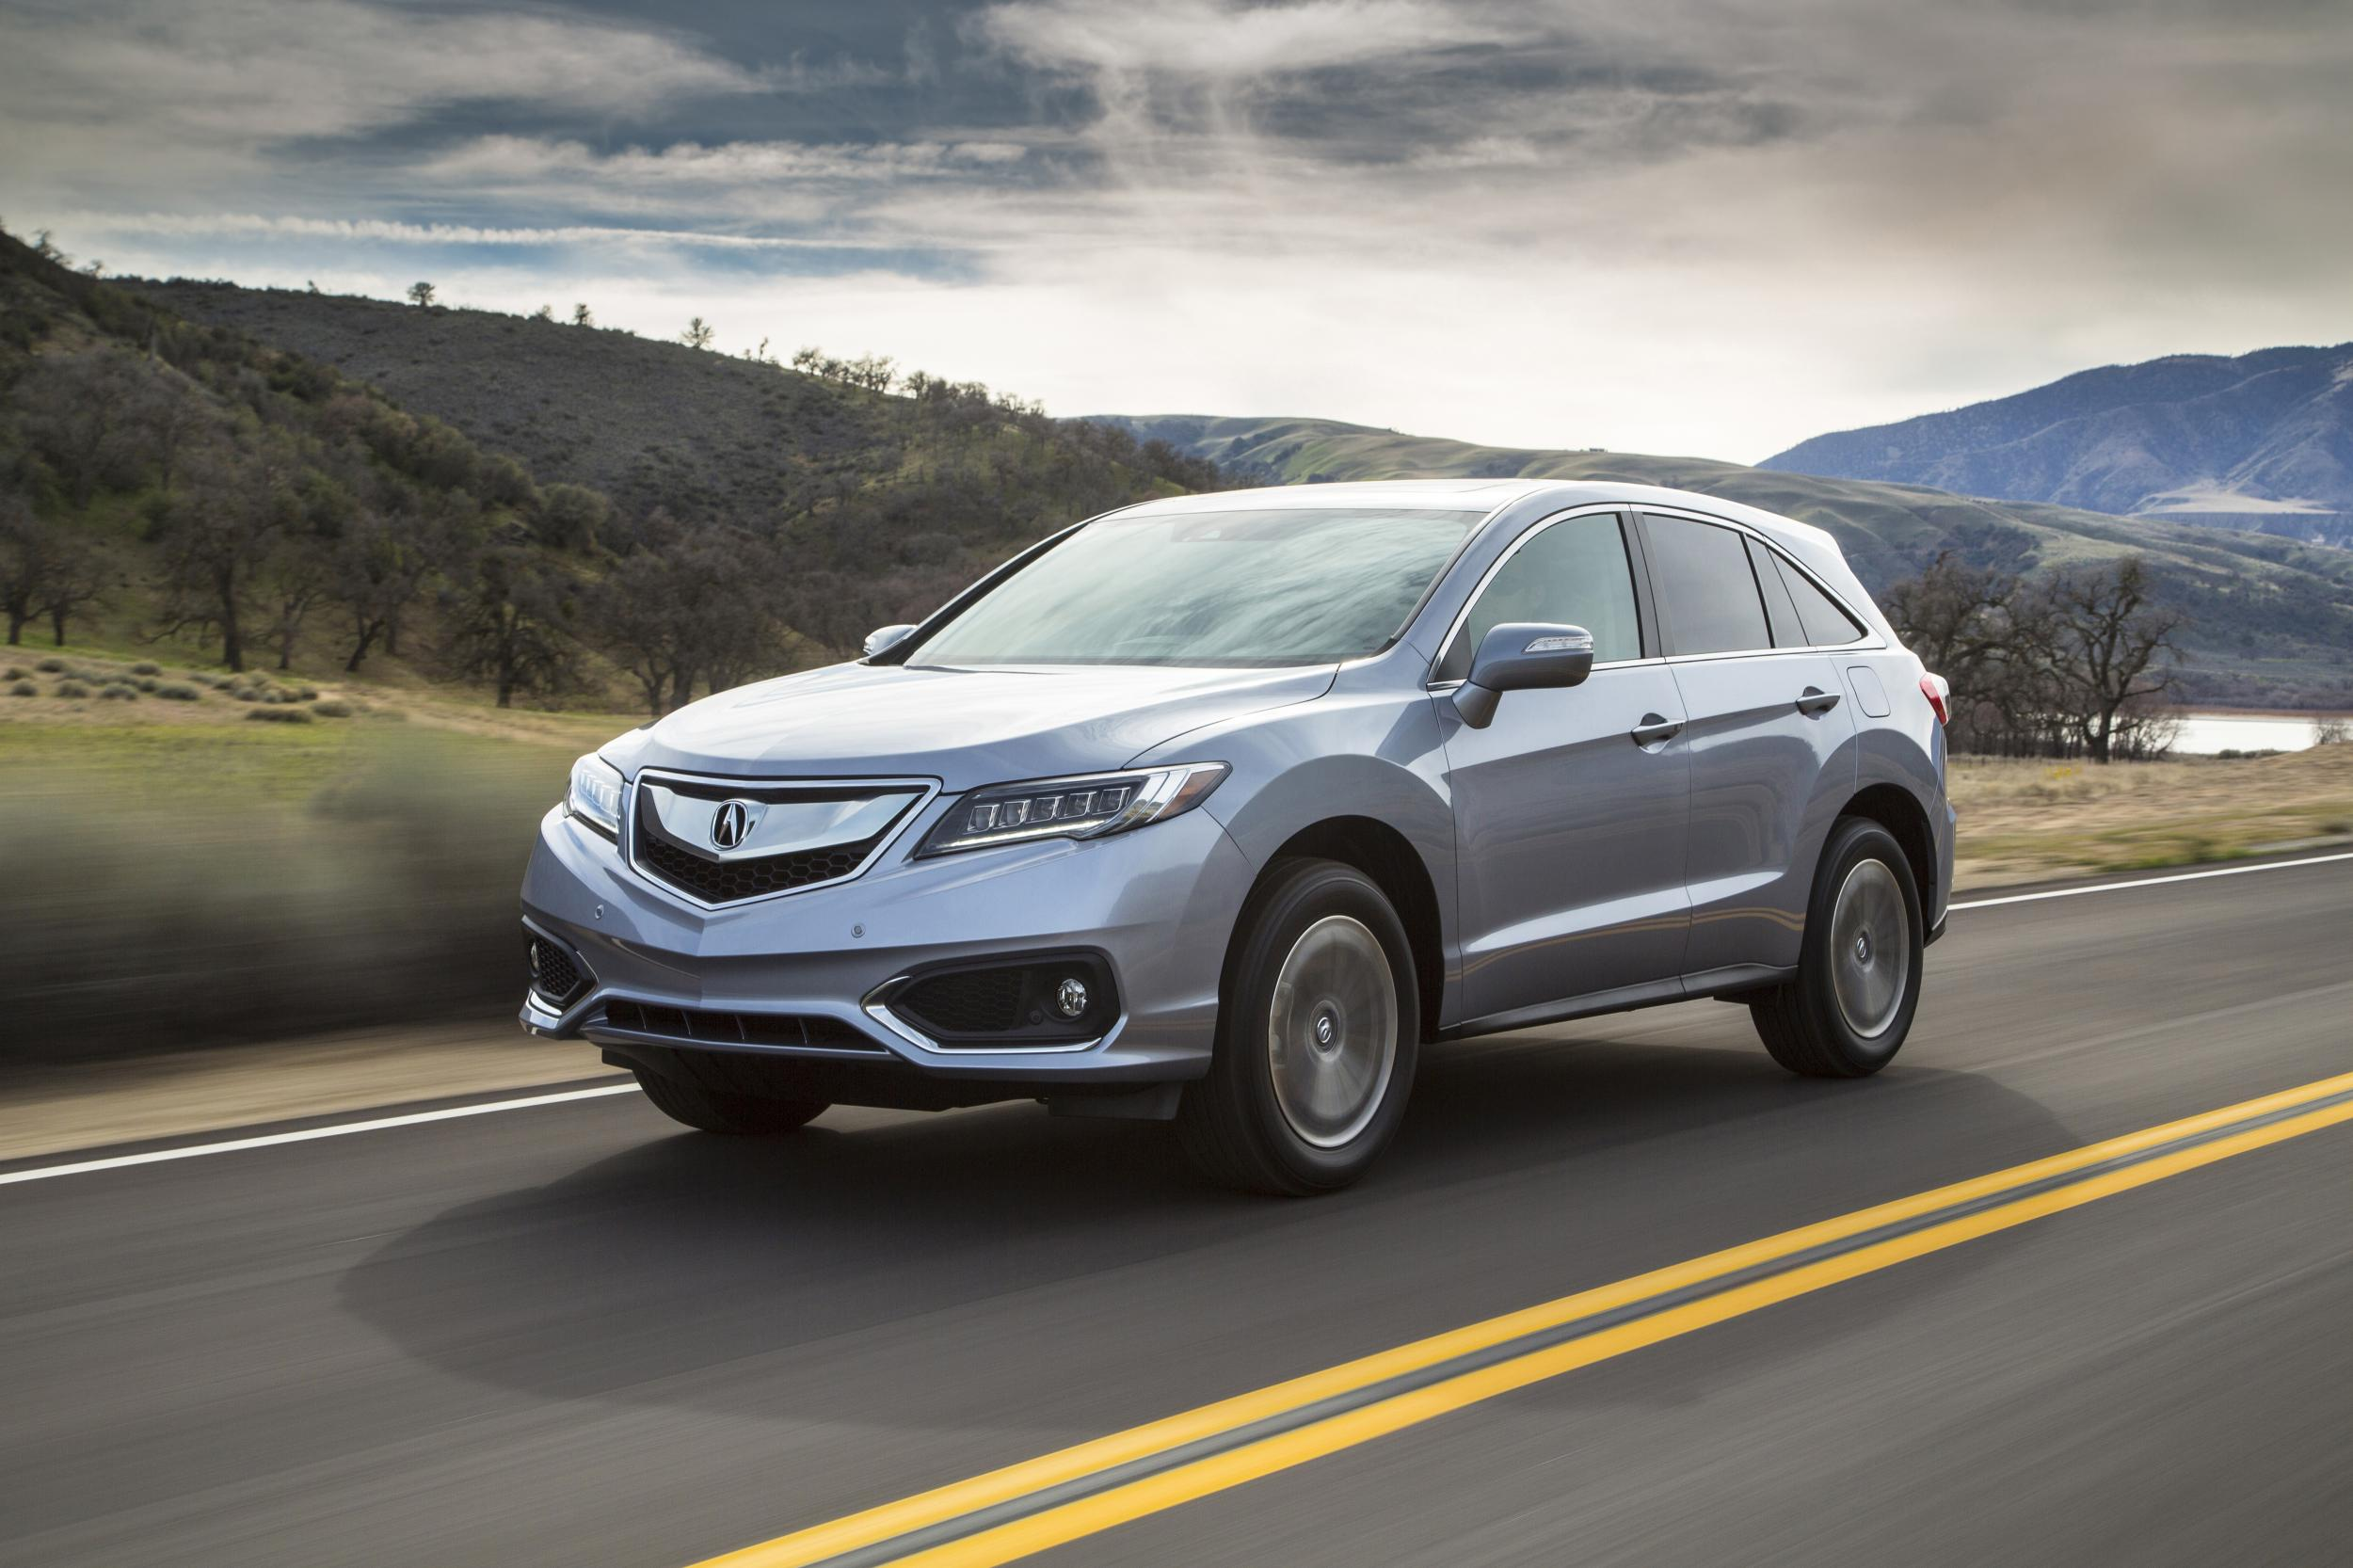 ilx models autos gallery the acura picture business